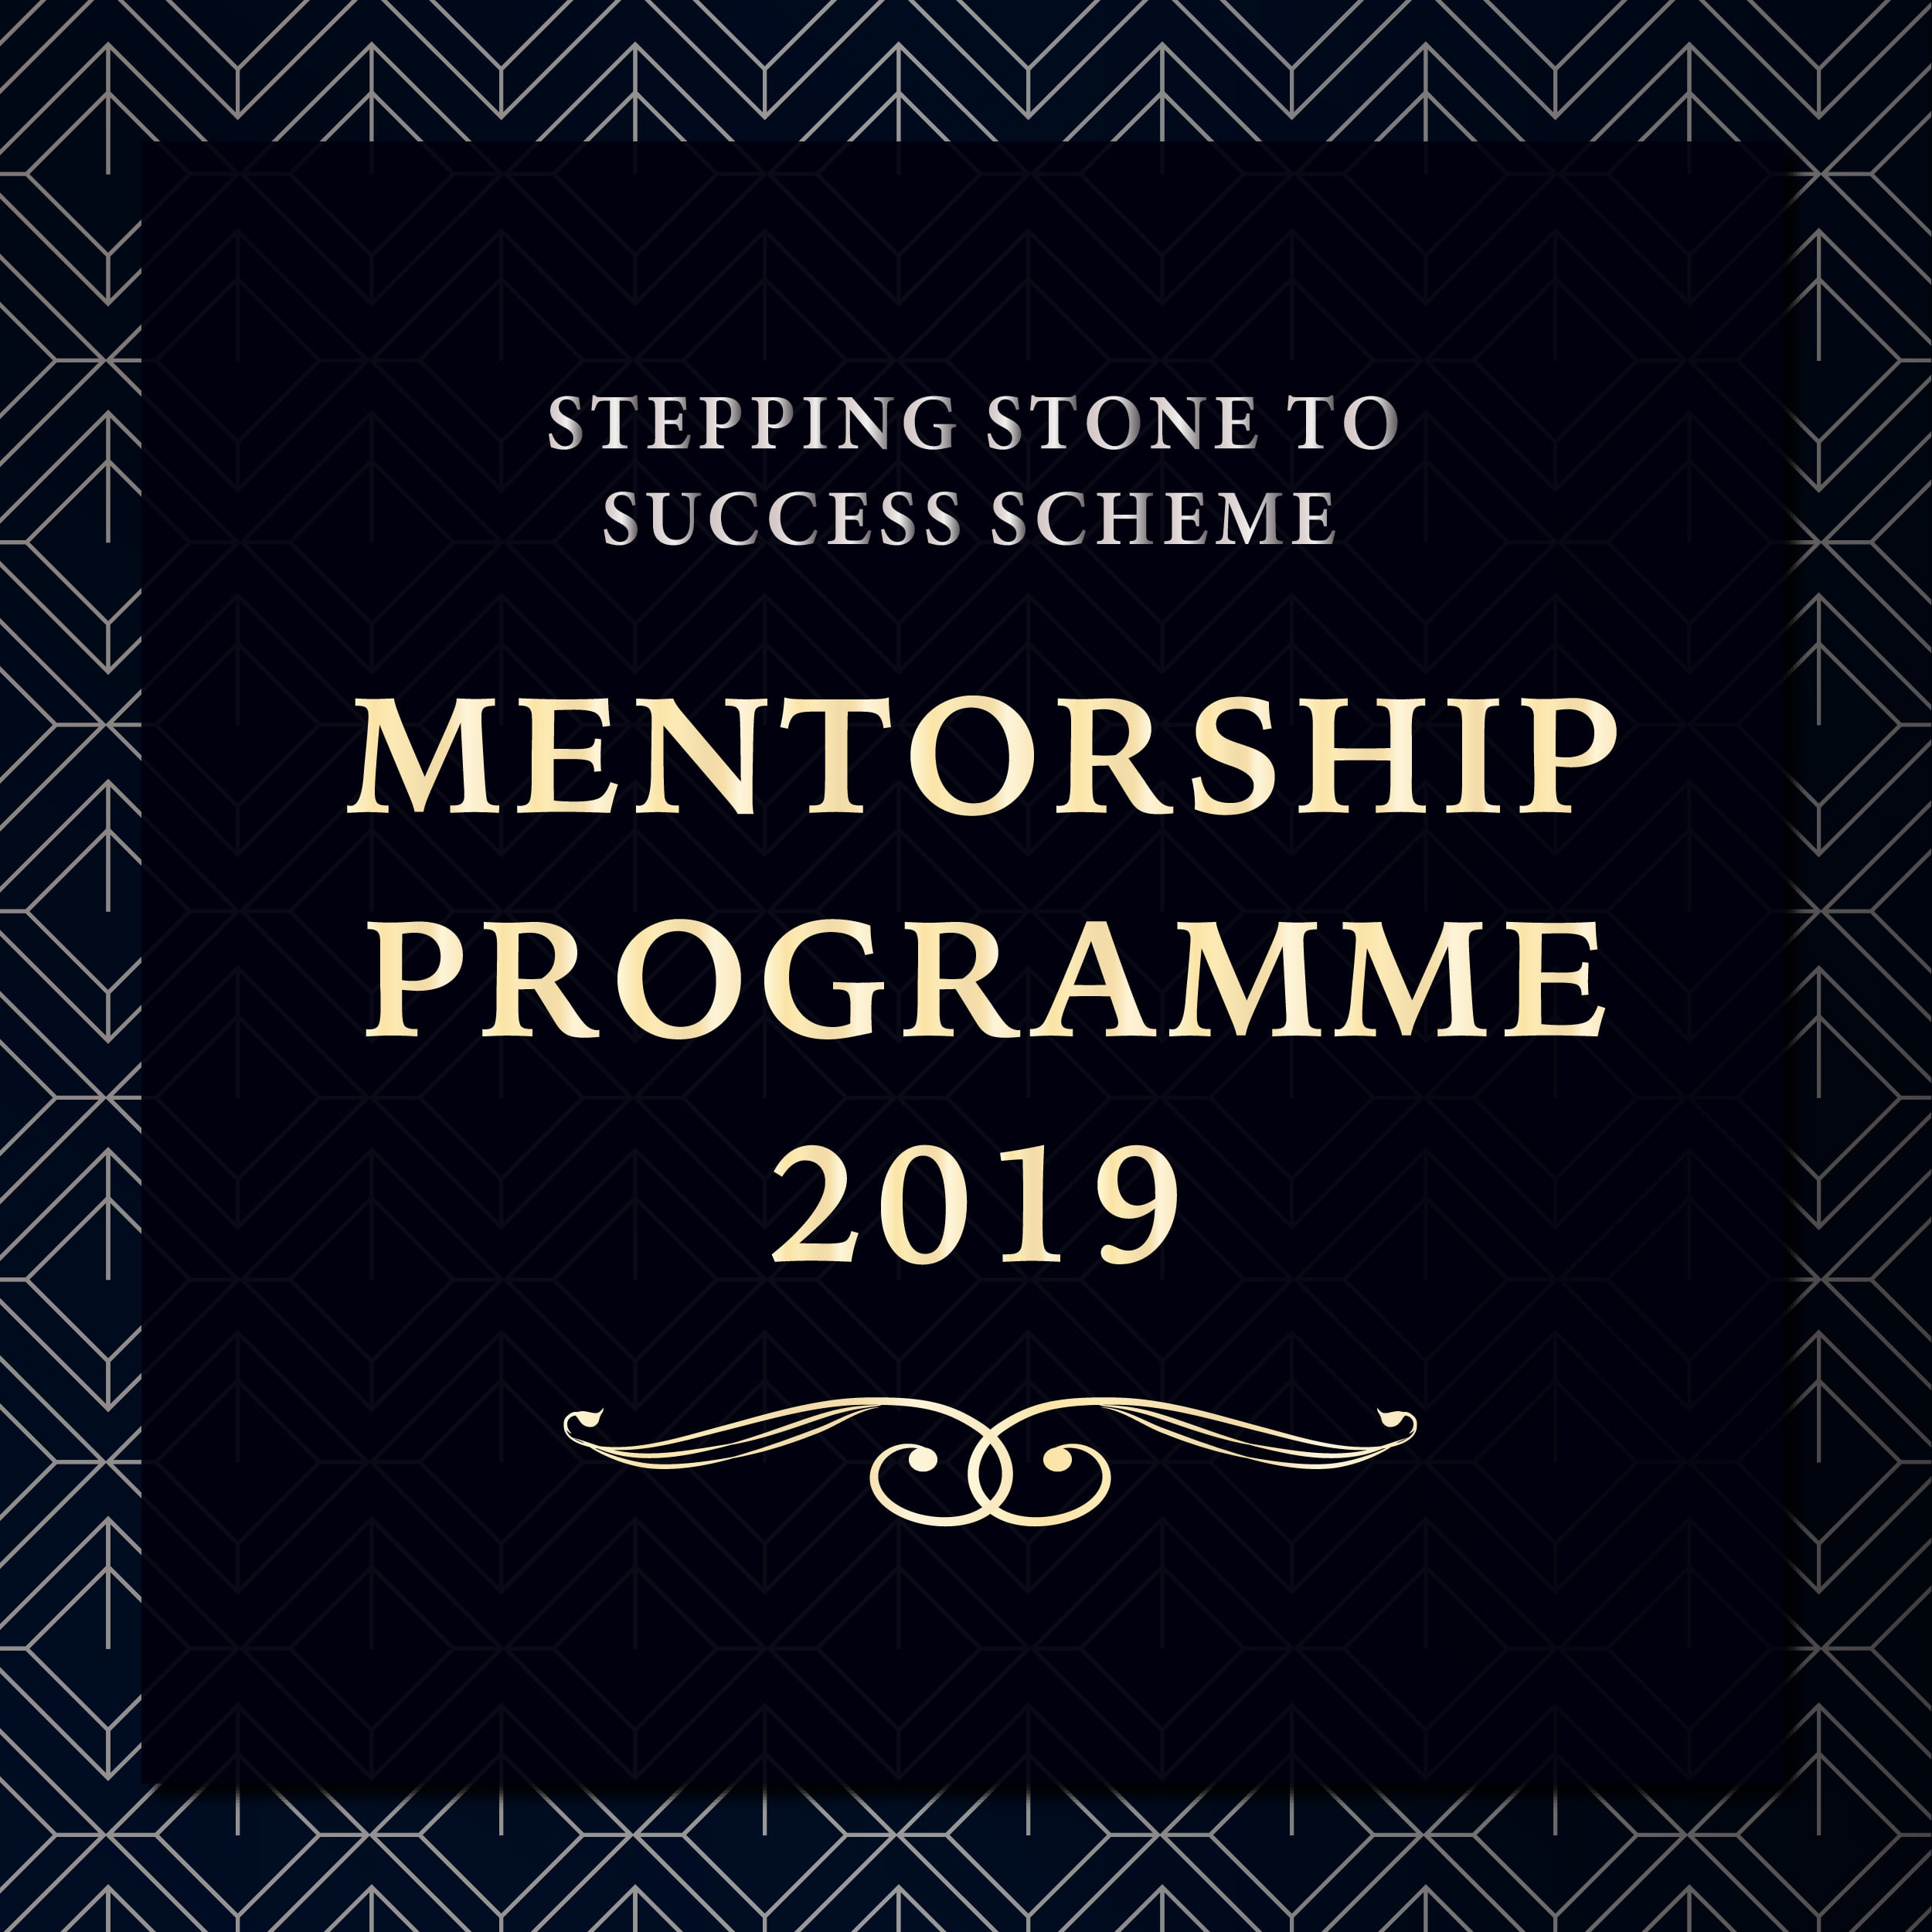 Mentorship Programme 2019 (Stepping Stone to Success Scheme 2019)